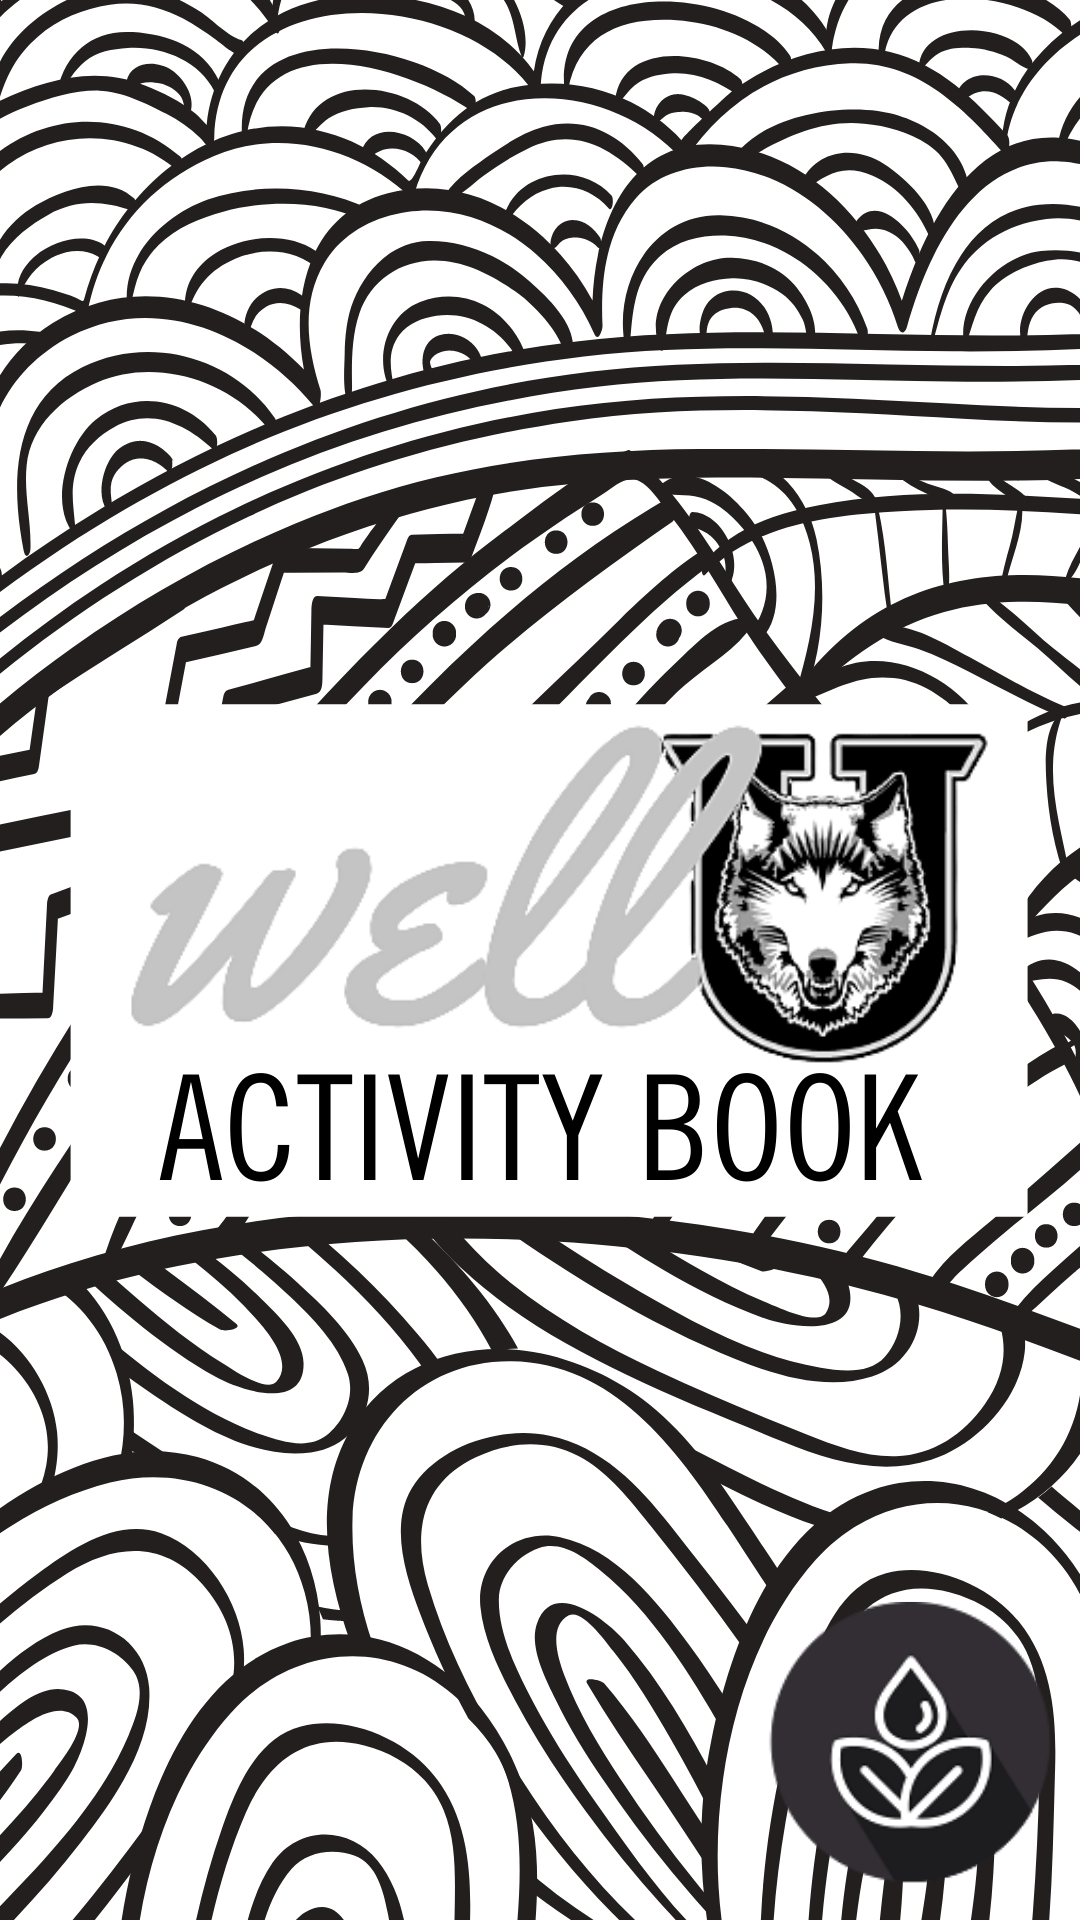 Well U Activity Book Cover Image